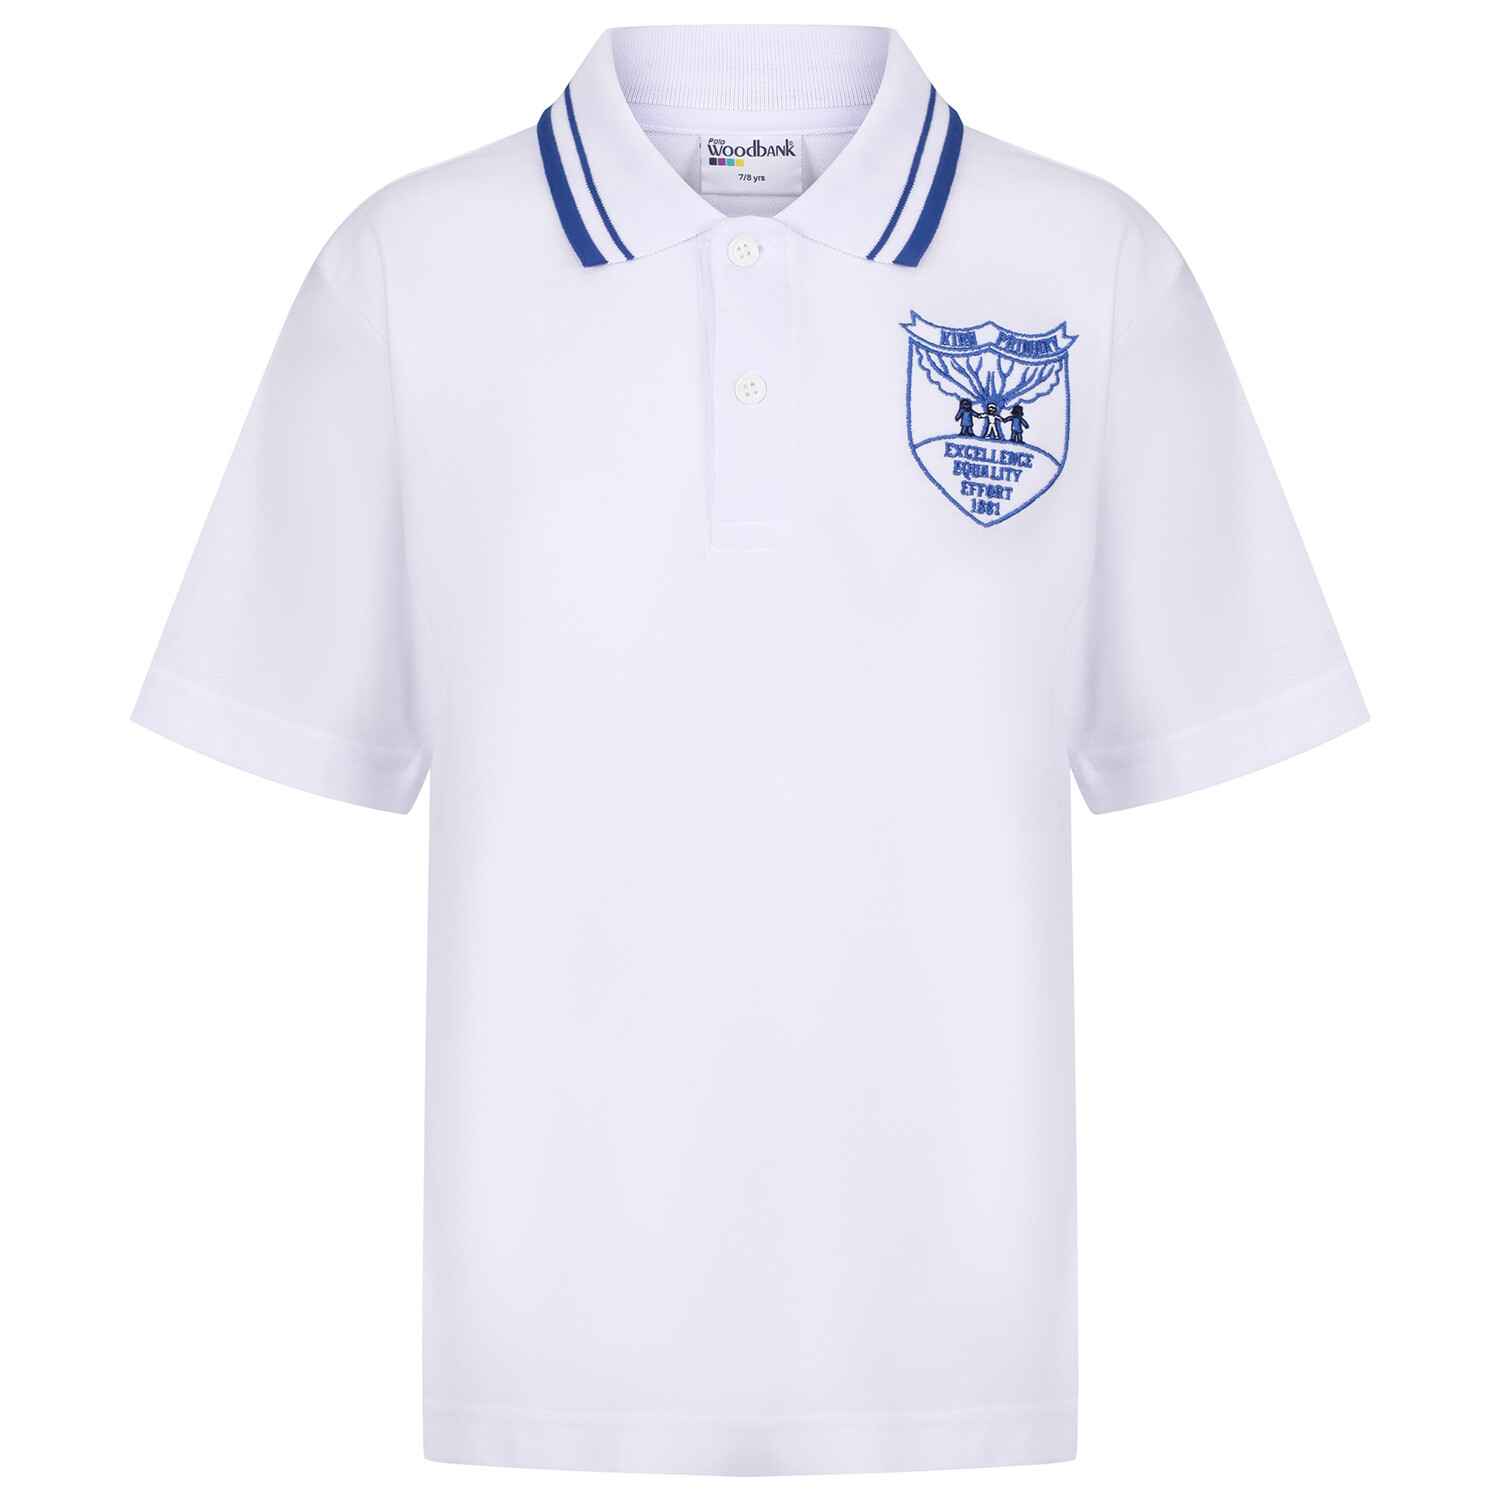 Kirn Primary ELC (Early Years) Poloshirt